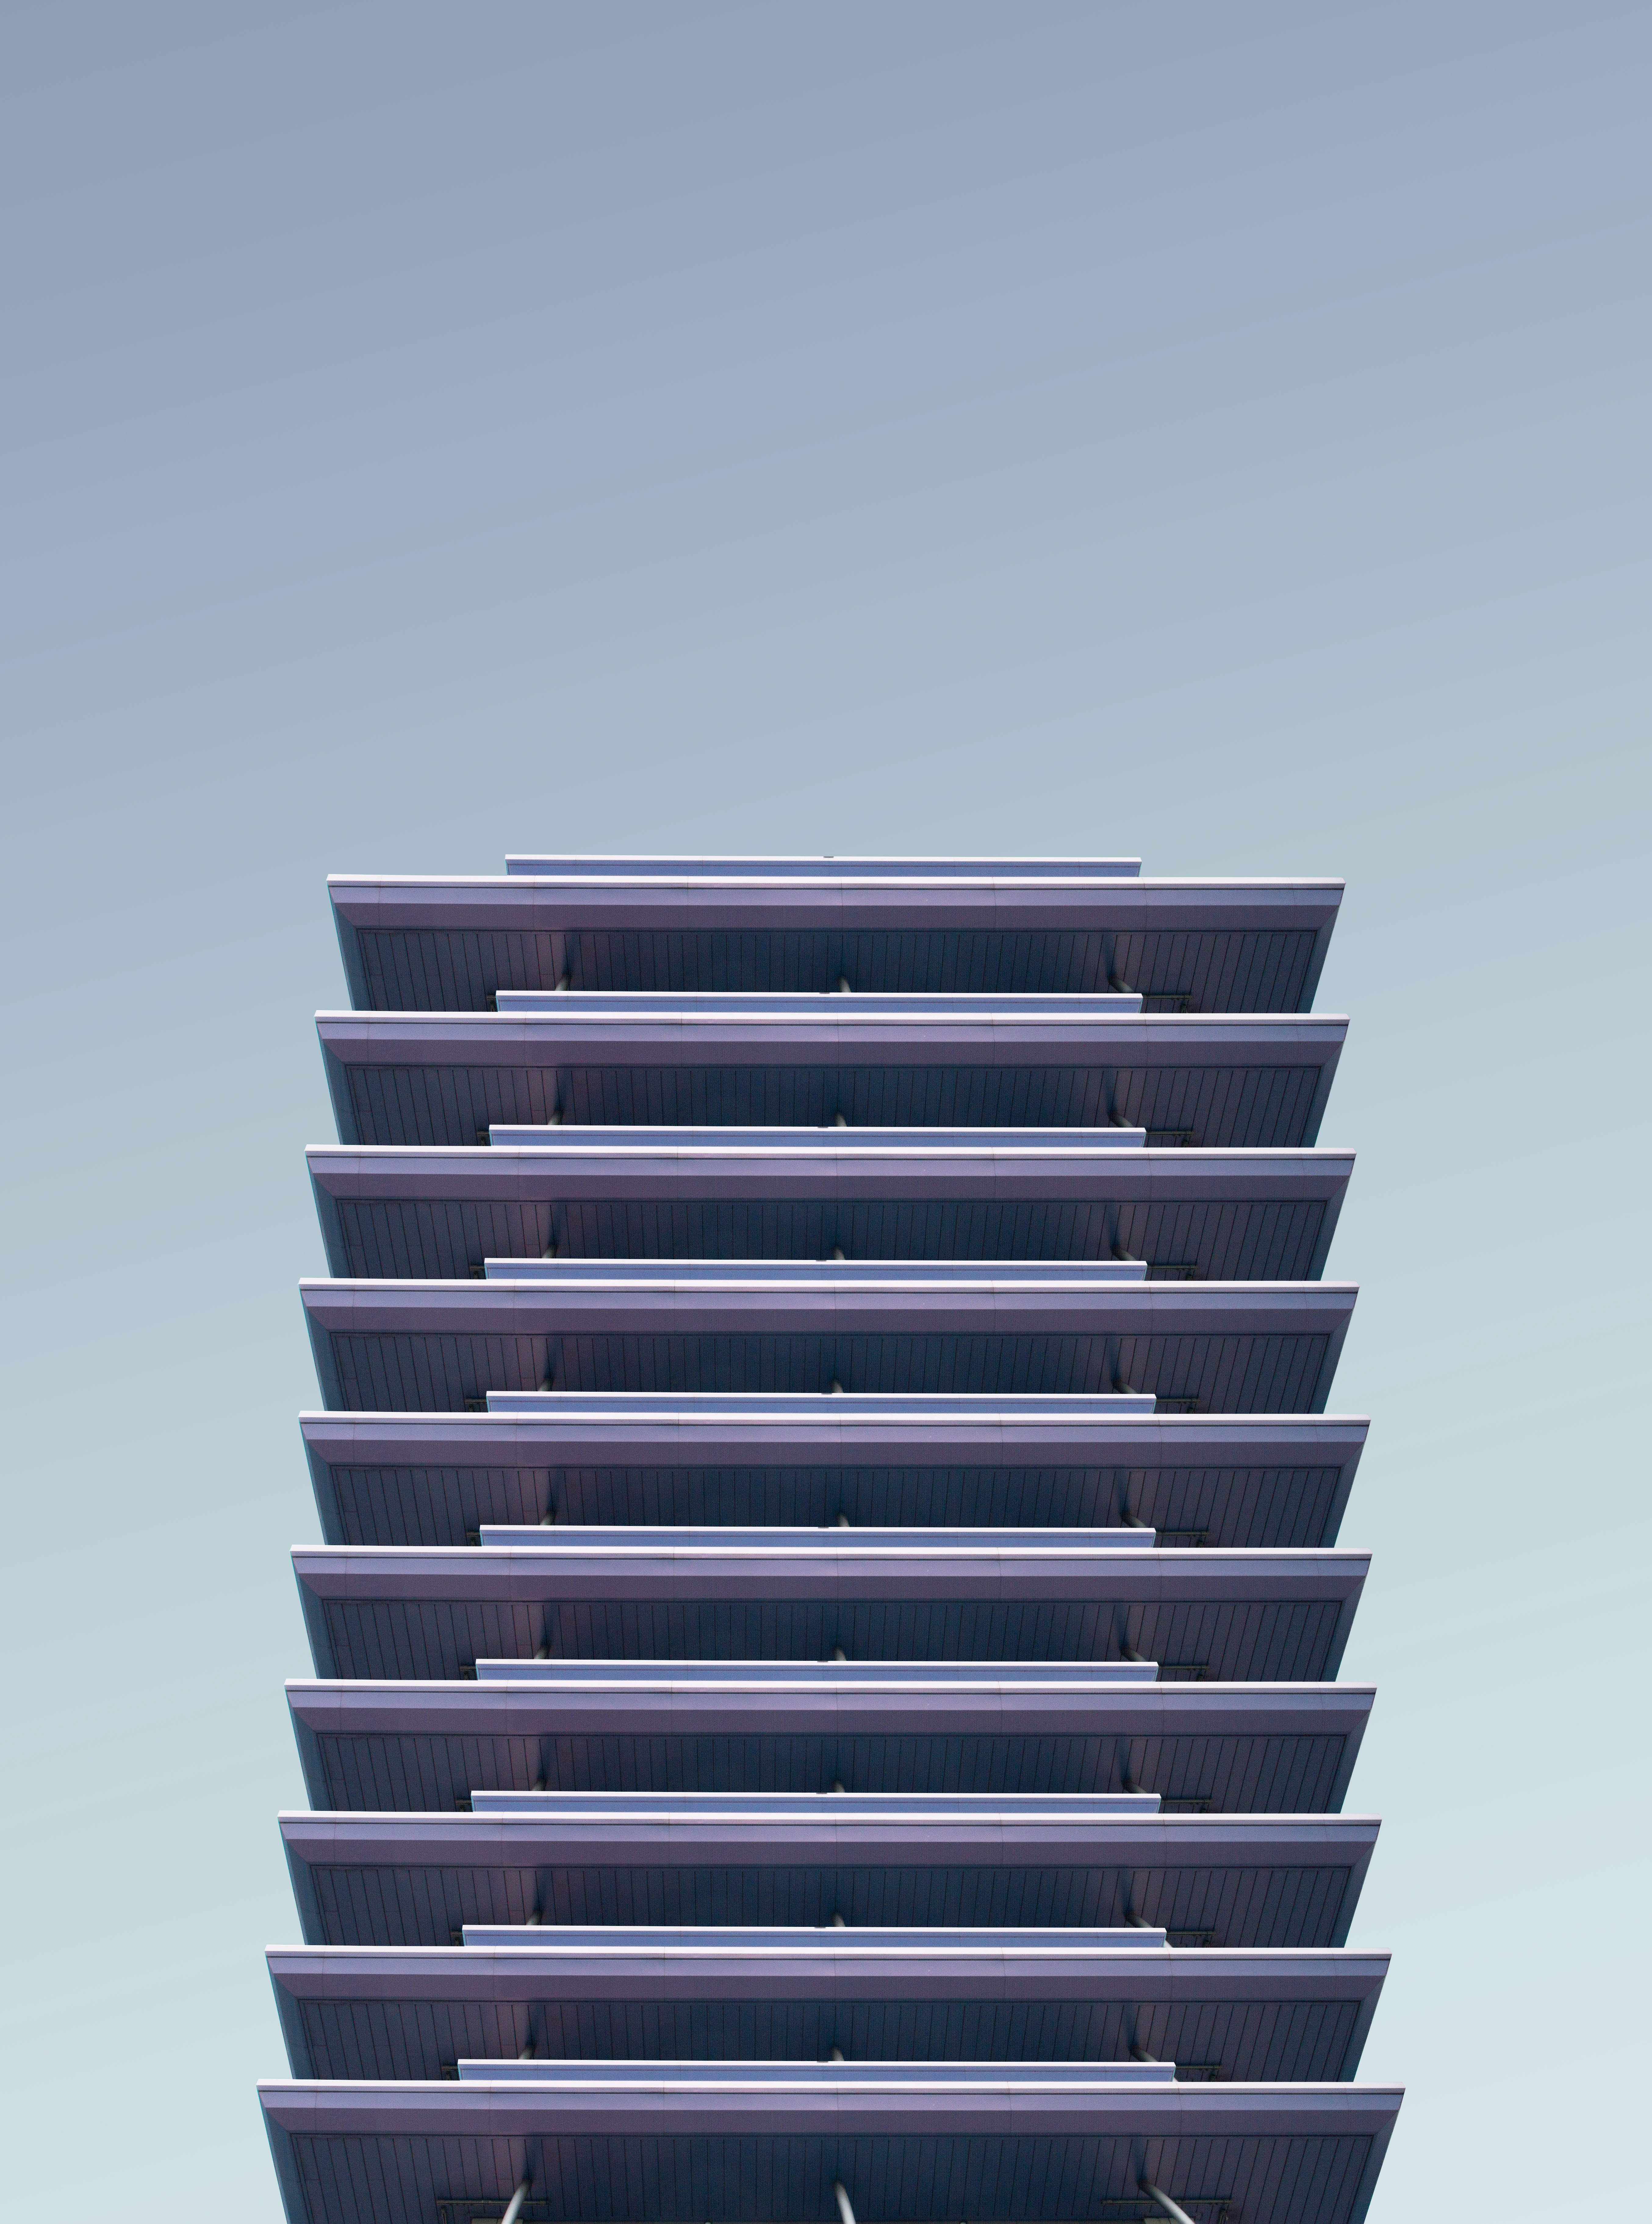 architectural photography of high-rise building